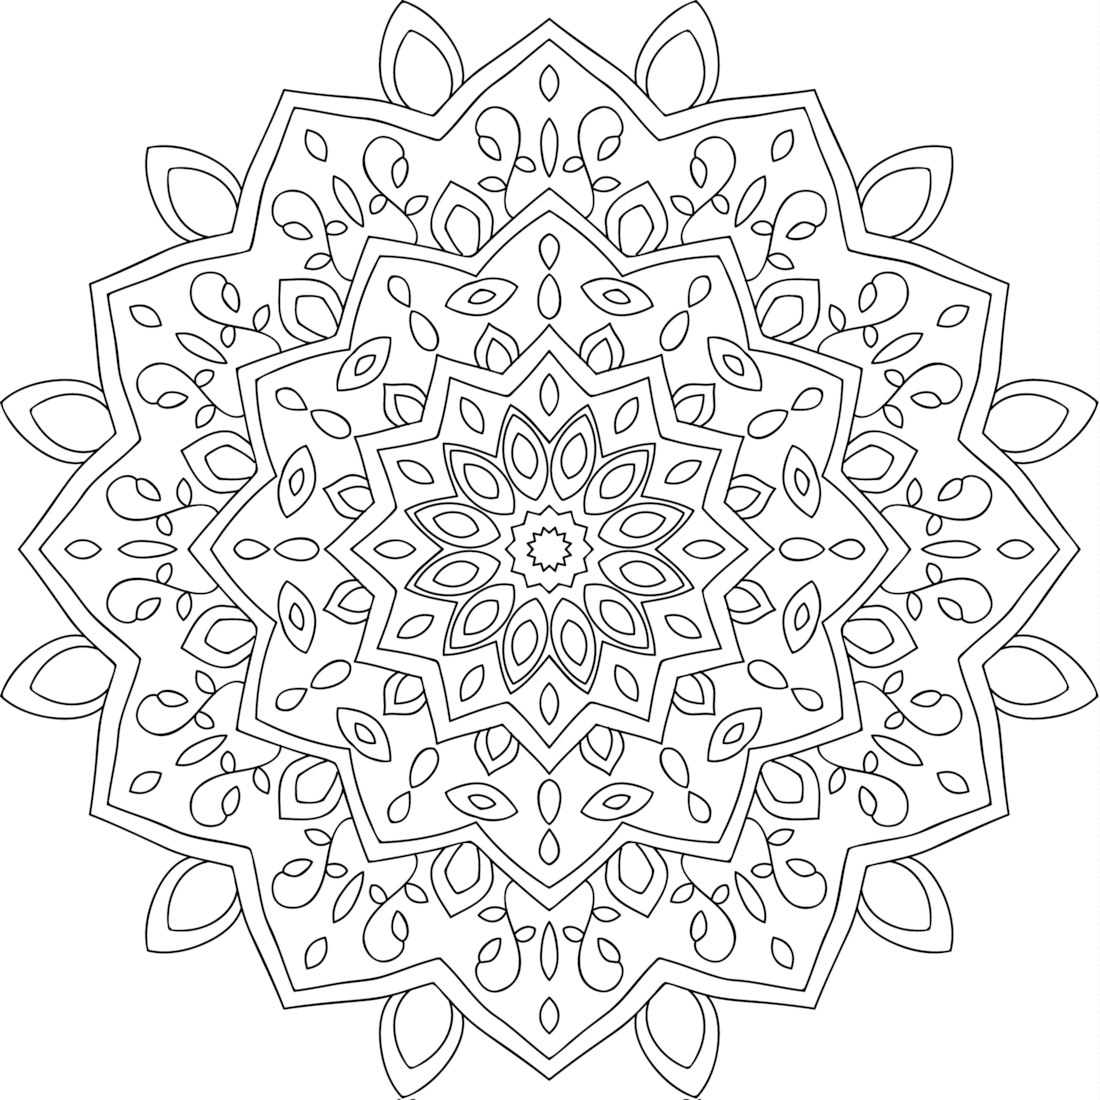 1100x1100 Helping Hands Coloring Page Picturesque Pages